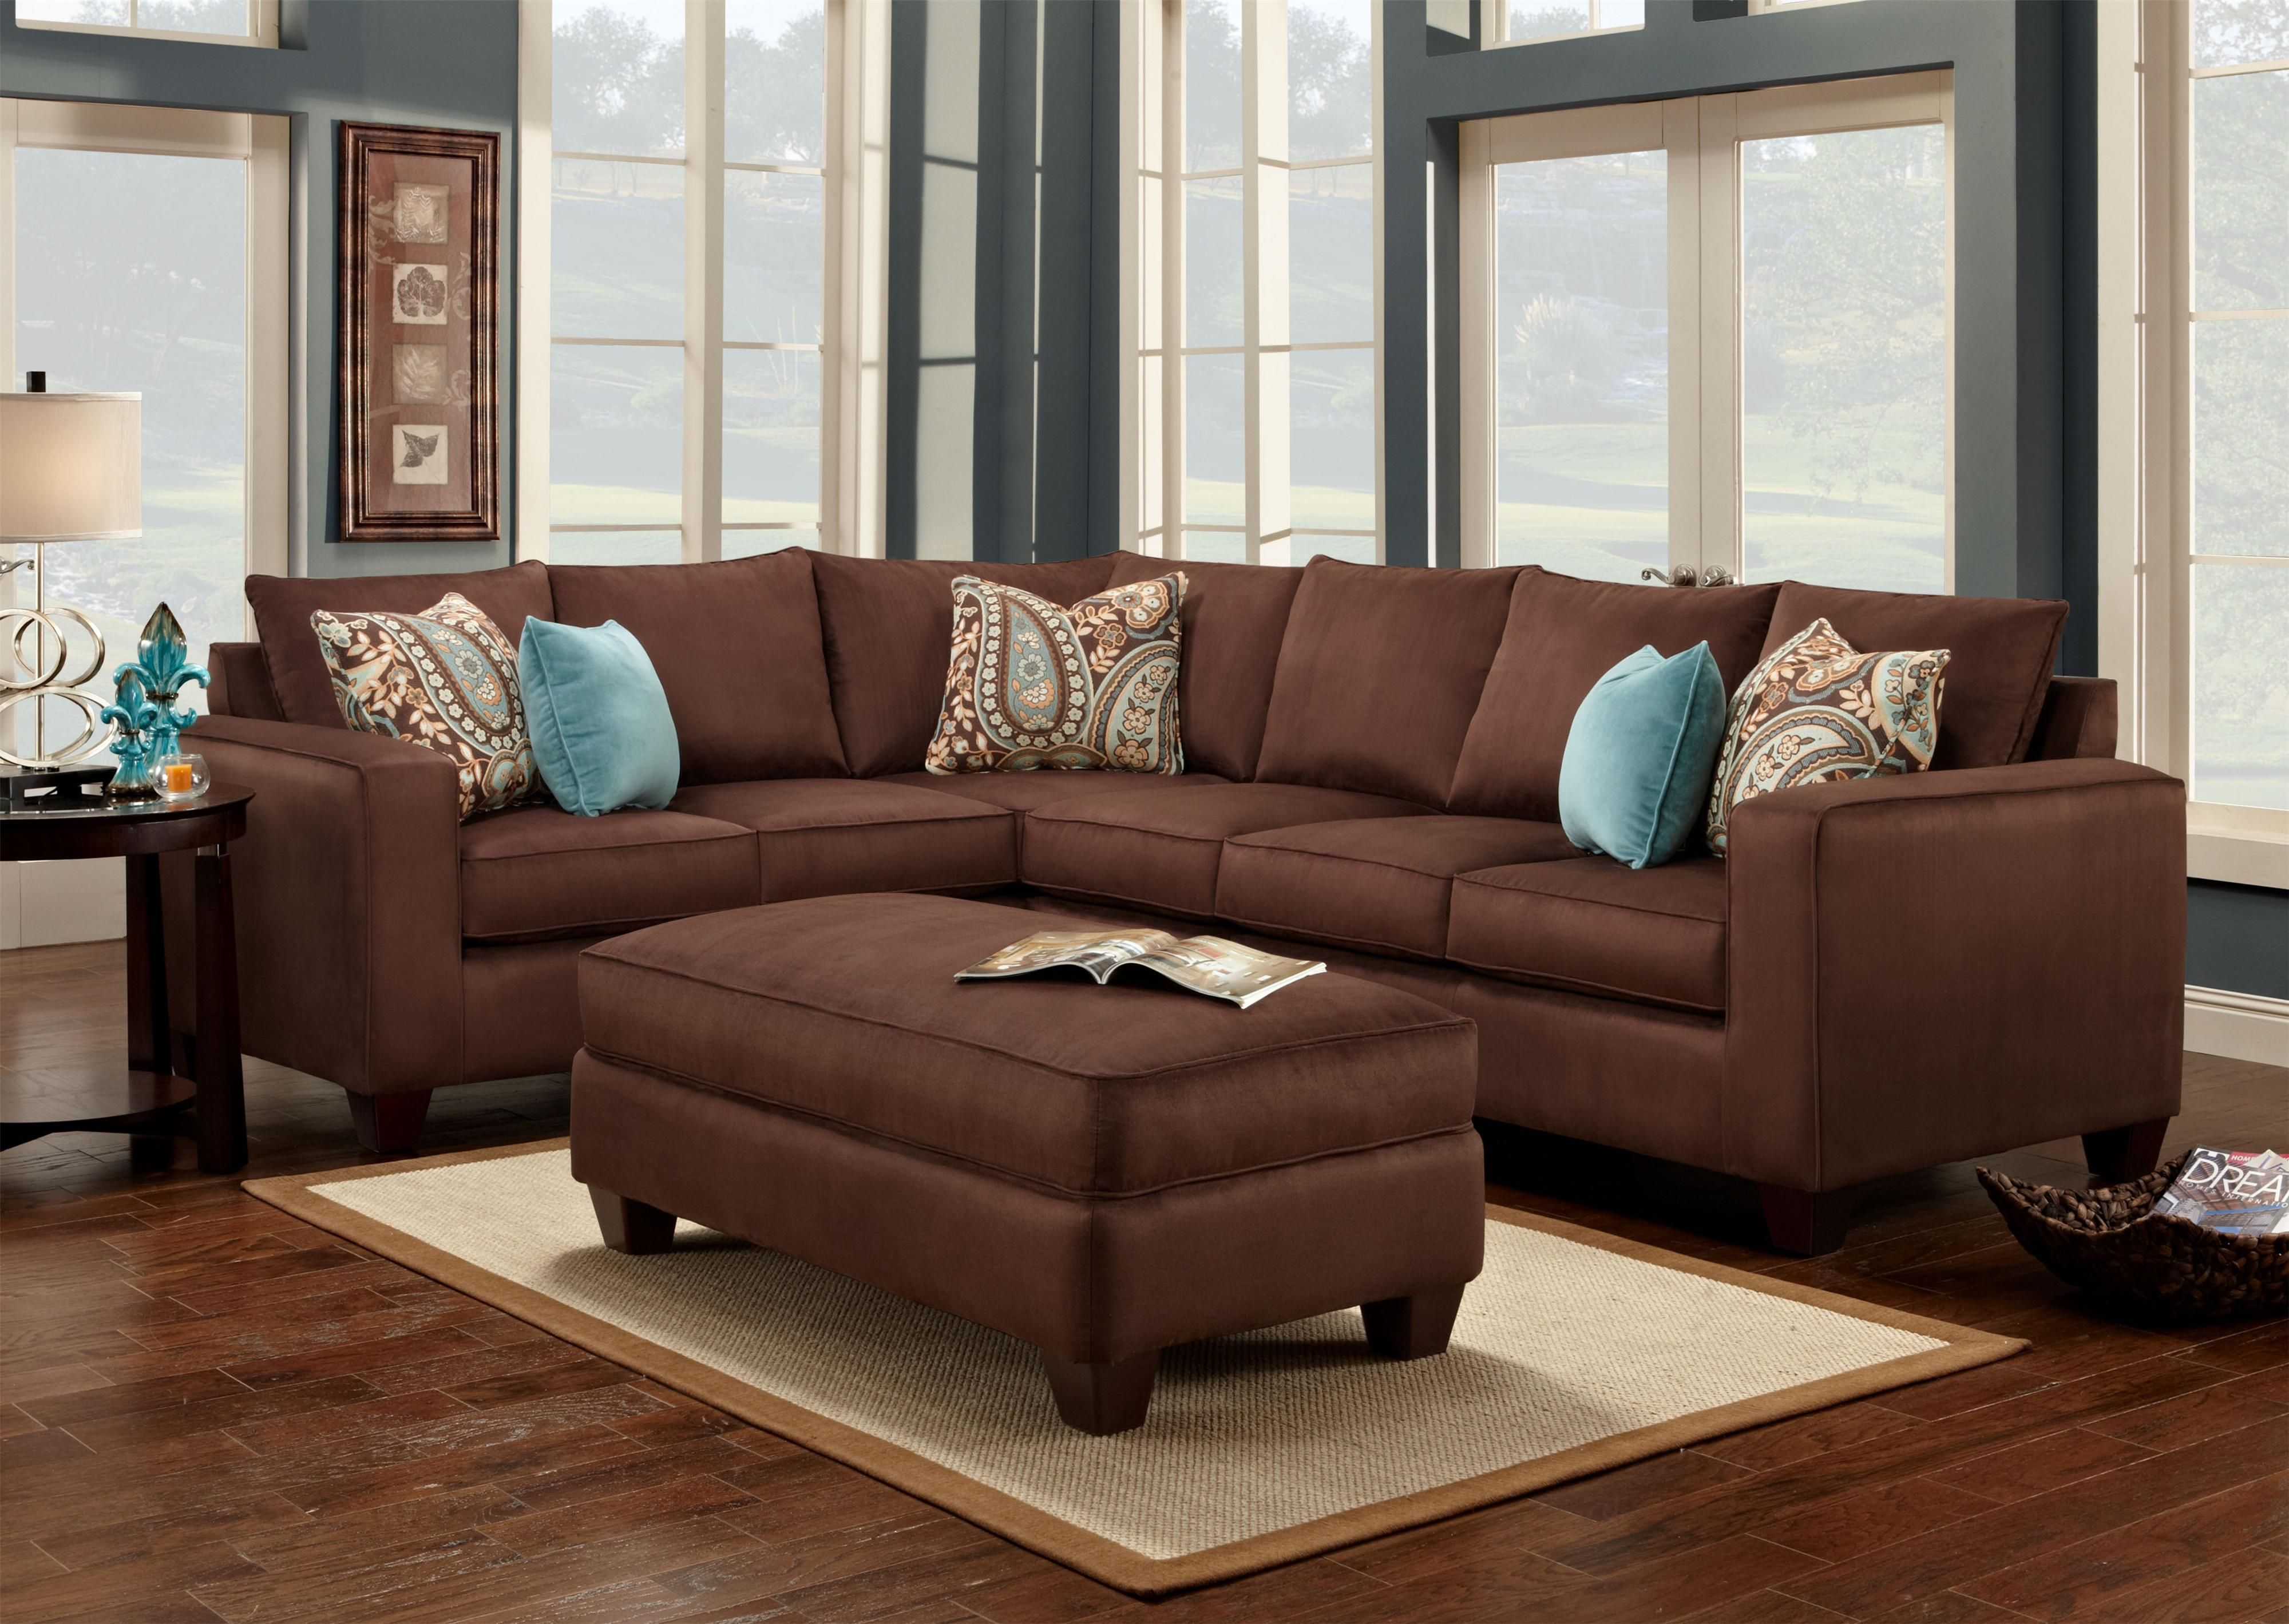 Turquoise And Chocolate Brown Living Room Decor Brown Couch